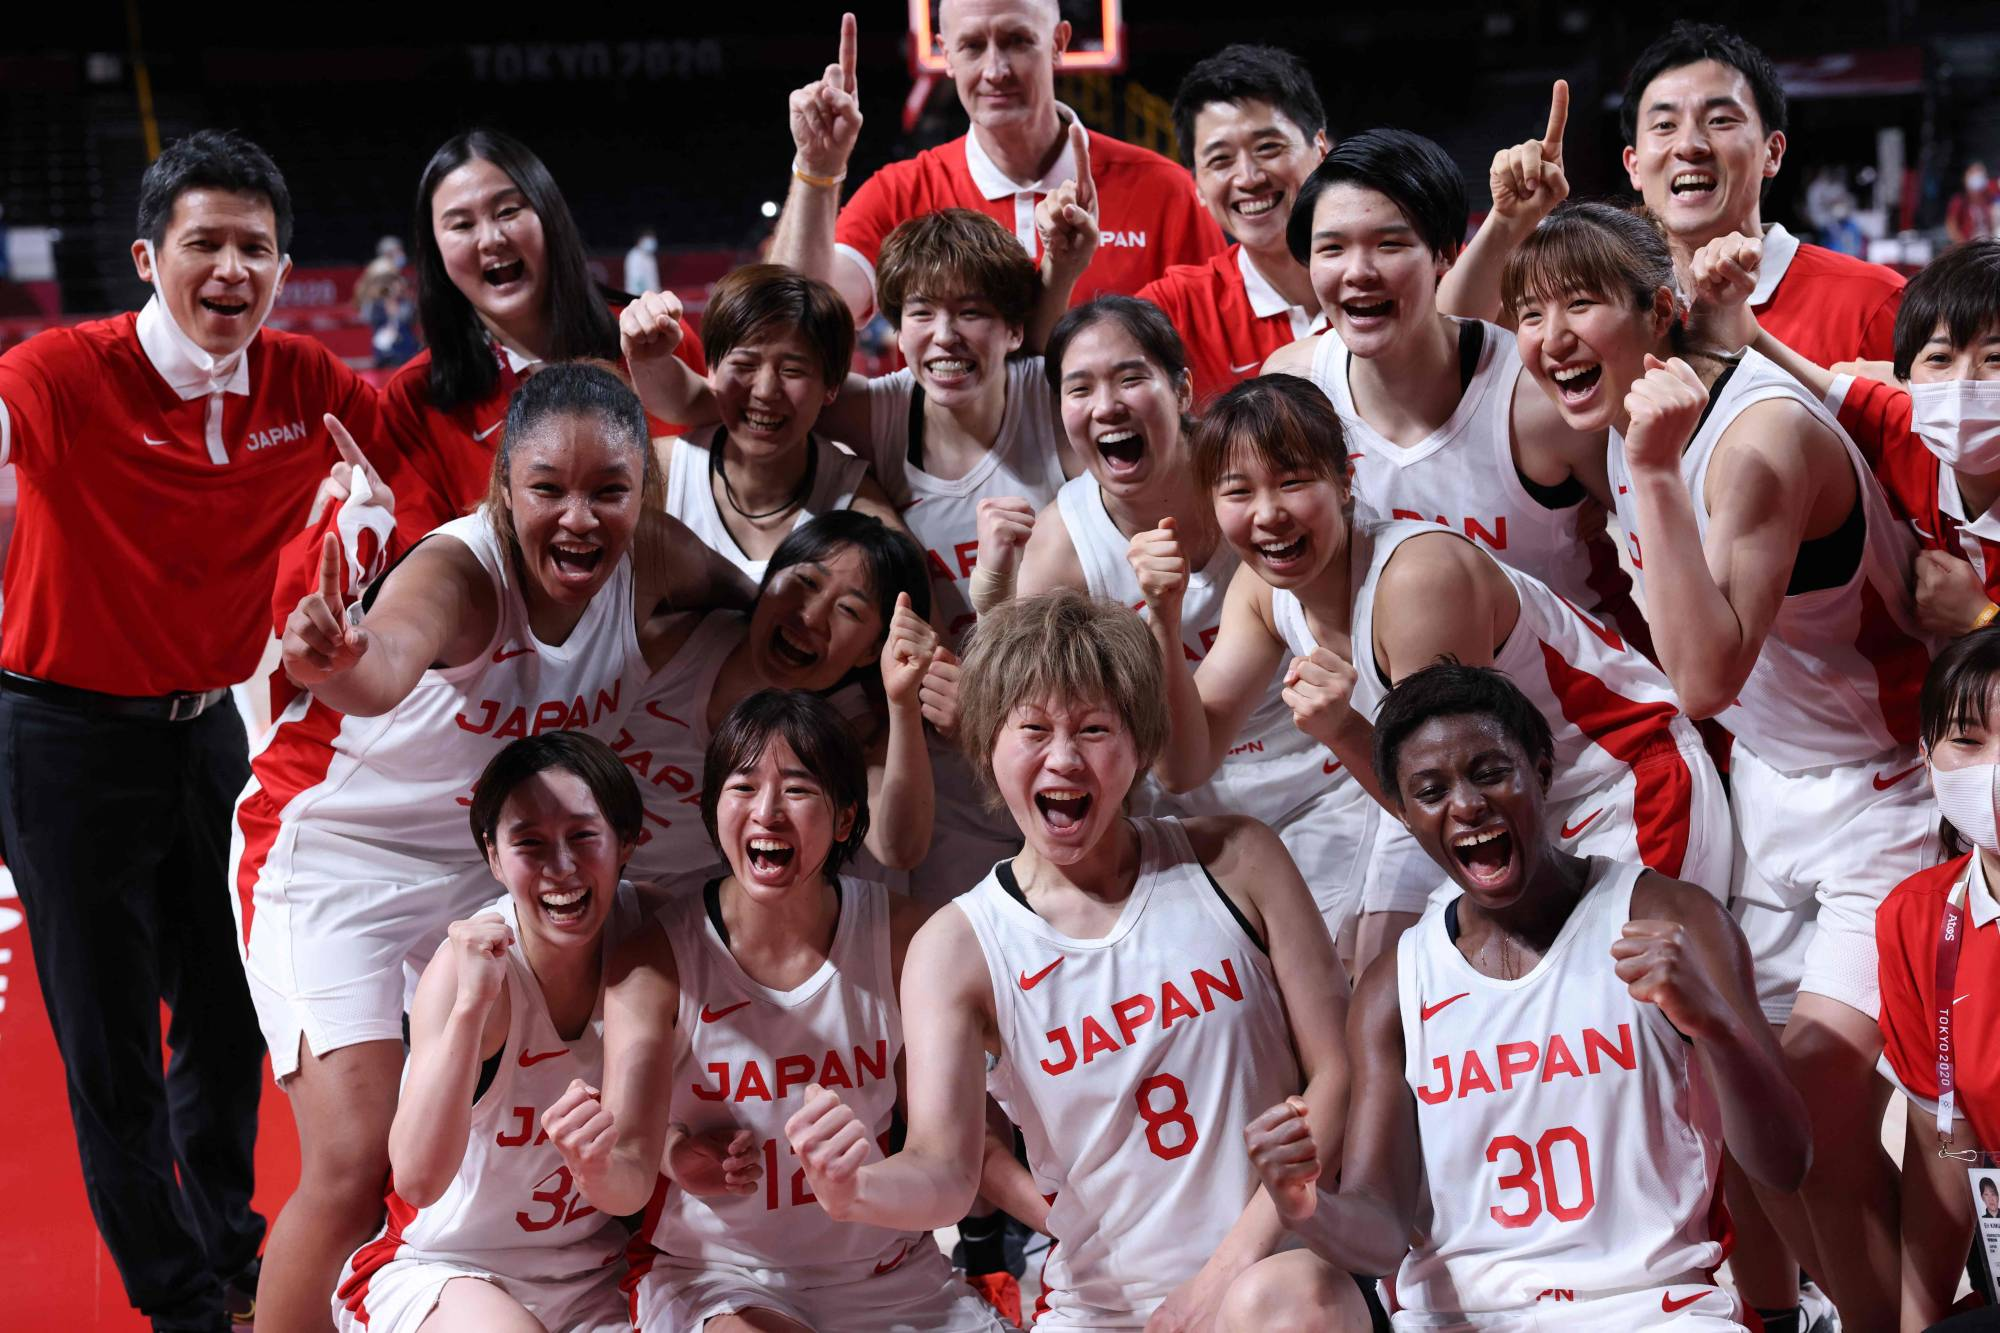 Three thorns fc players called into u.s. With Eye On Gold Japan Women S Basketball Team Looks To Avenge First Loss To U S The Japan Times